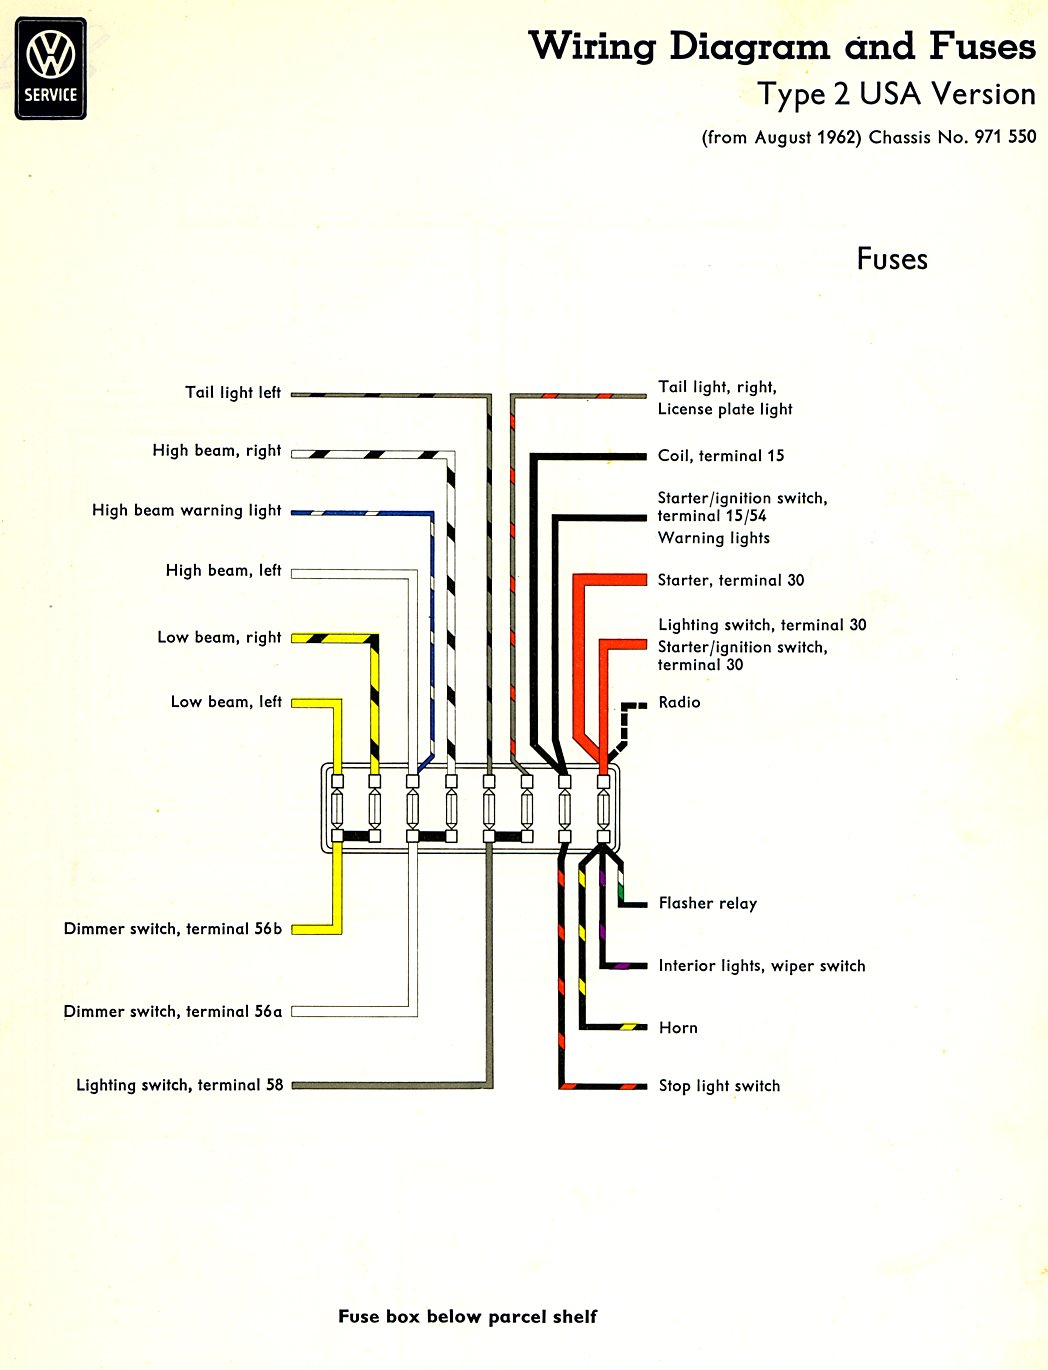 1971 Dodge Dart Wiring Diagram Real 1965 Fuse Box Turn Signal Vw Get Free Image About 71 Challenger